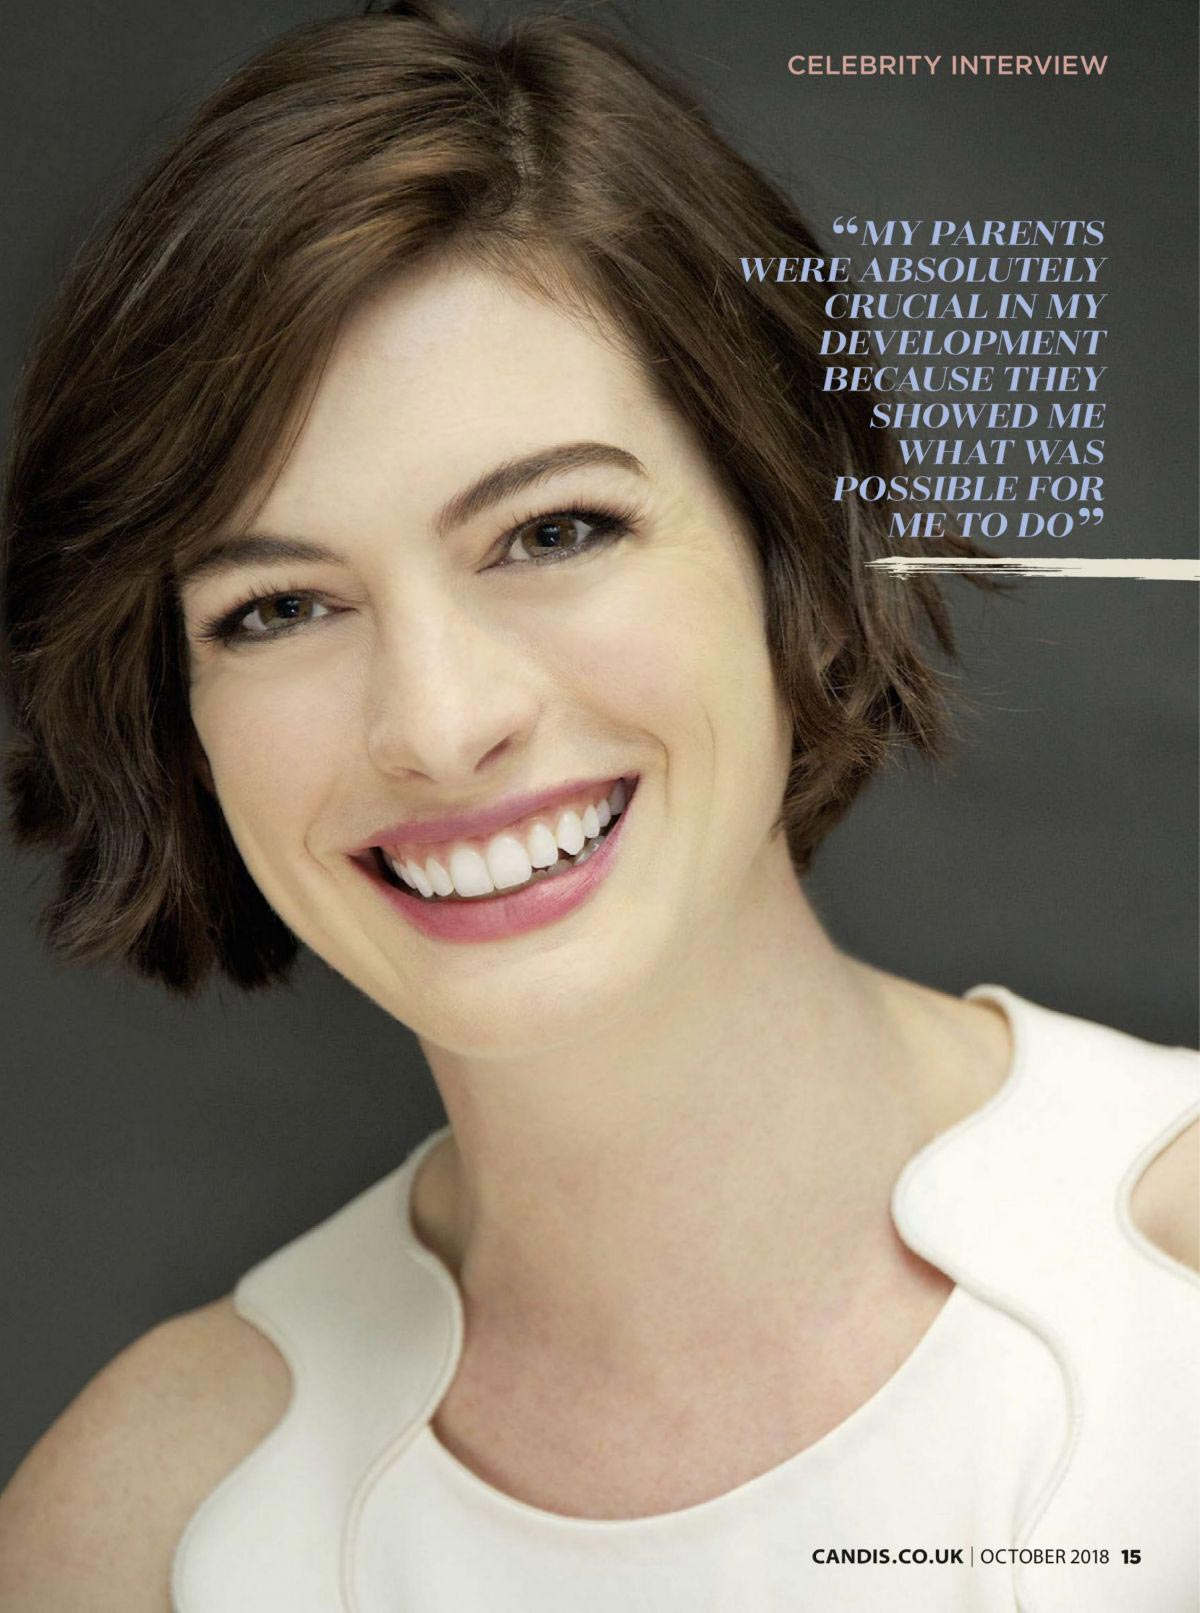 Anne Hathaway in Candis Magazine, October 2018 1